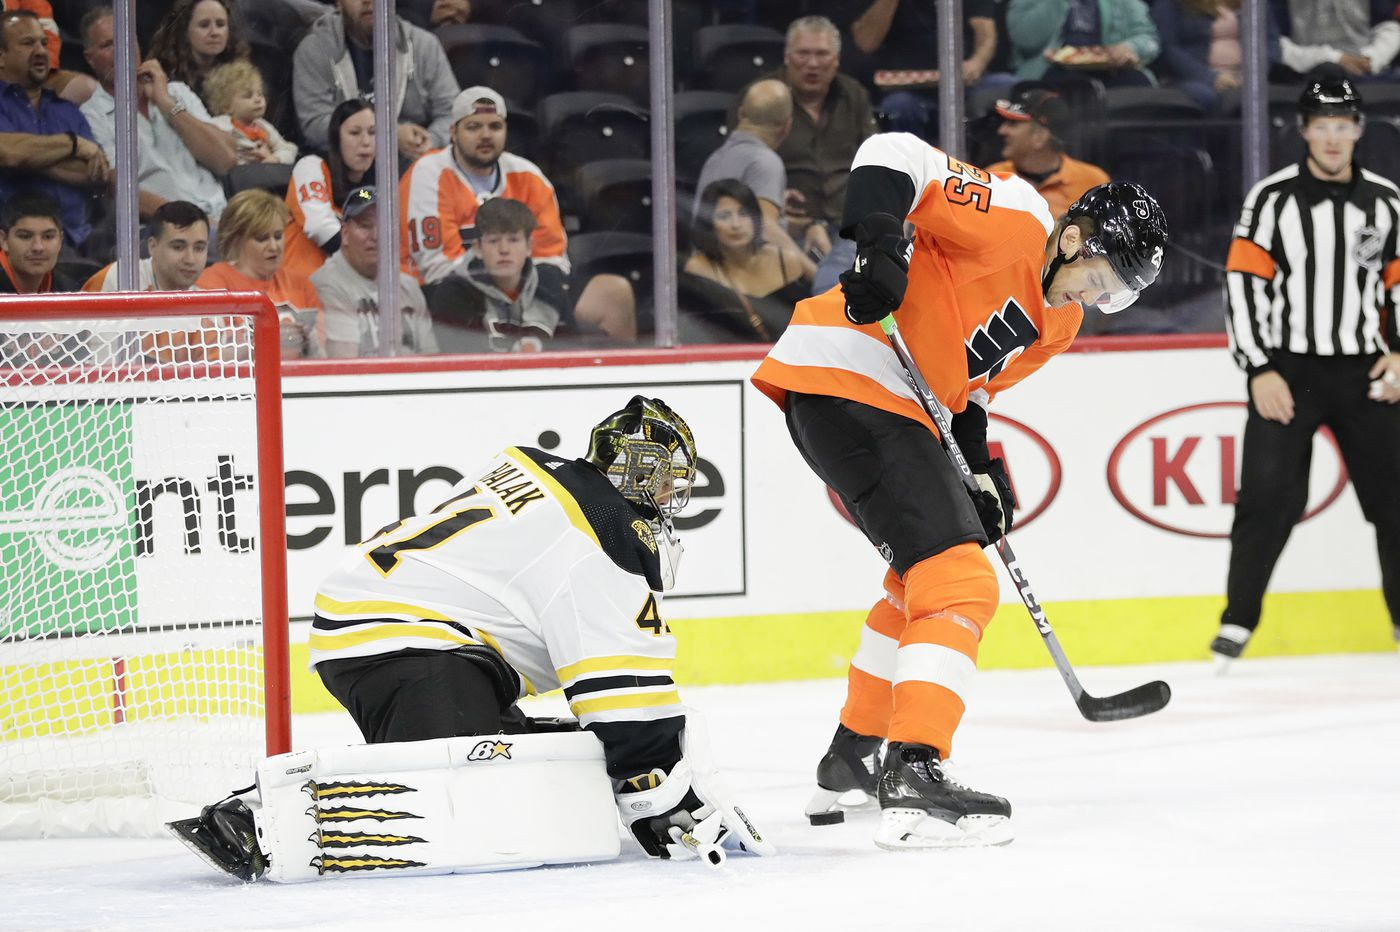 Flyers' mission: A much better start than last year